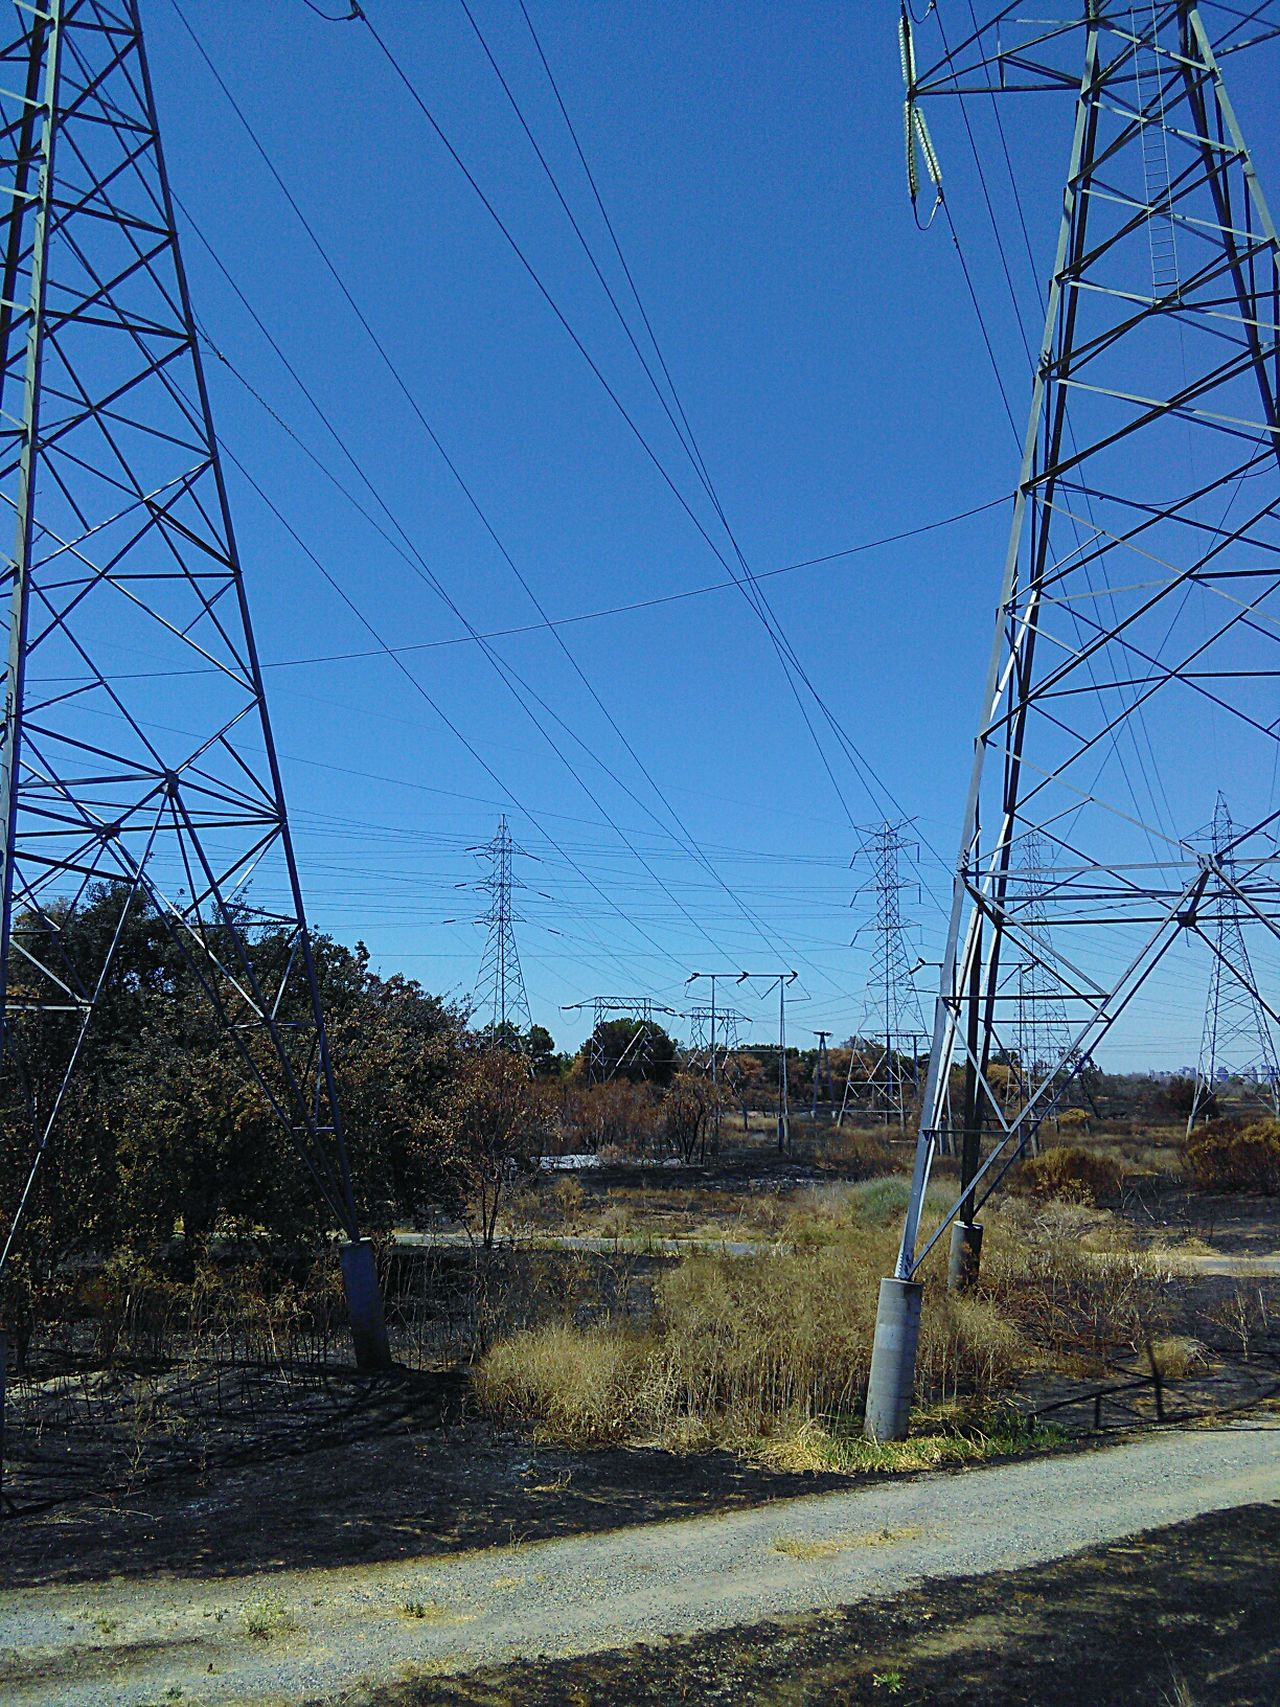 Electricity Wires And Cables Fire Scorched Grass Electricity Pylons Power Lines Against Sky Electricity Pylons High Voltage Electricity Wires Nature Trail Bike Path Sacramento, California Trees And Sky Trees And Nature Trees My Photography Trees And Bushes Walking Around Trail Taking Photos ❤